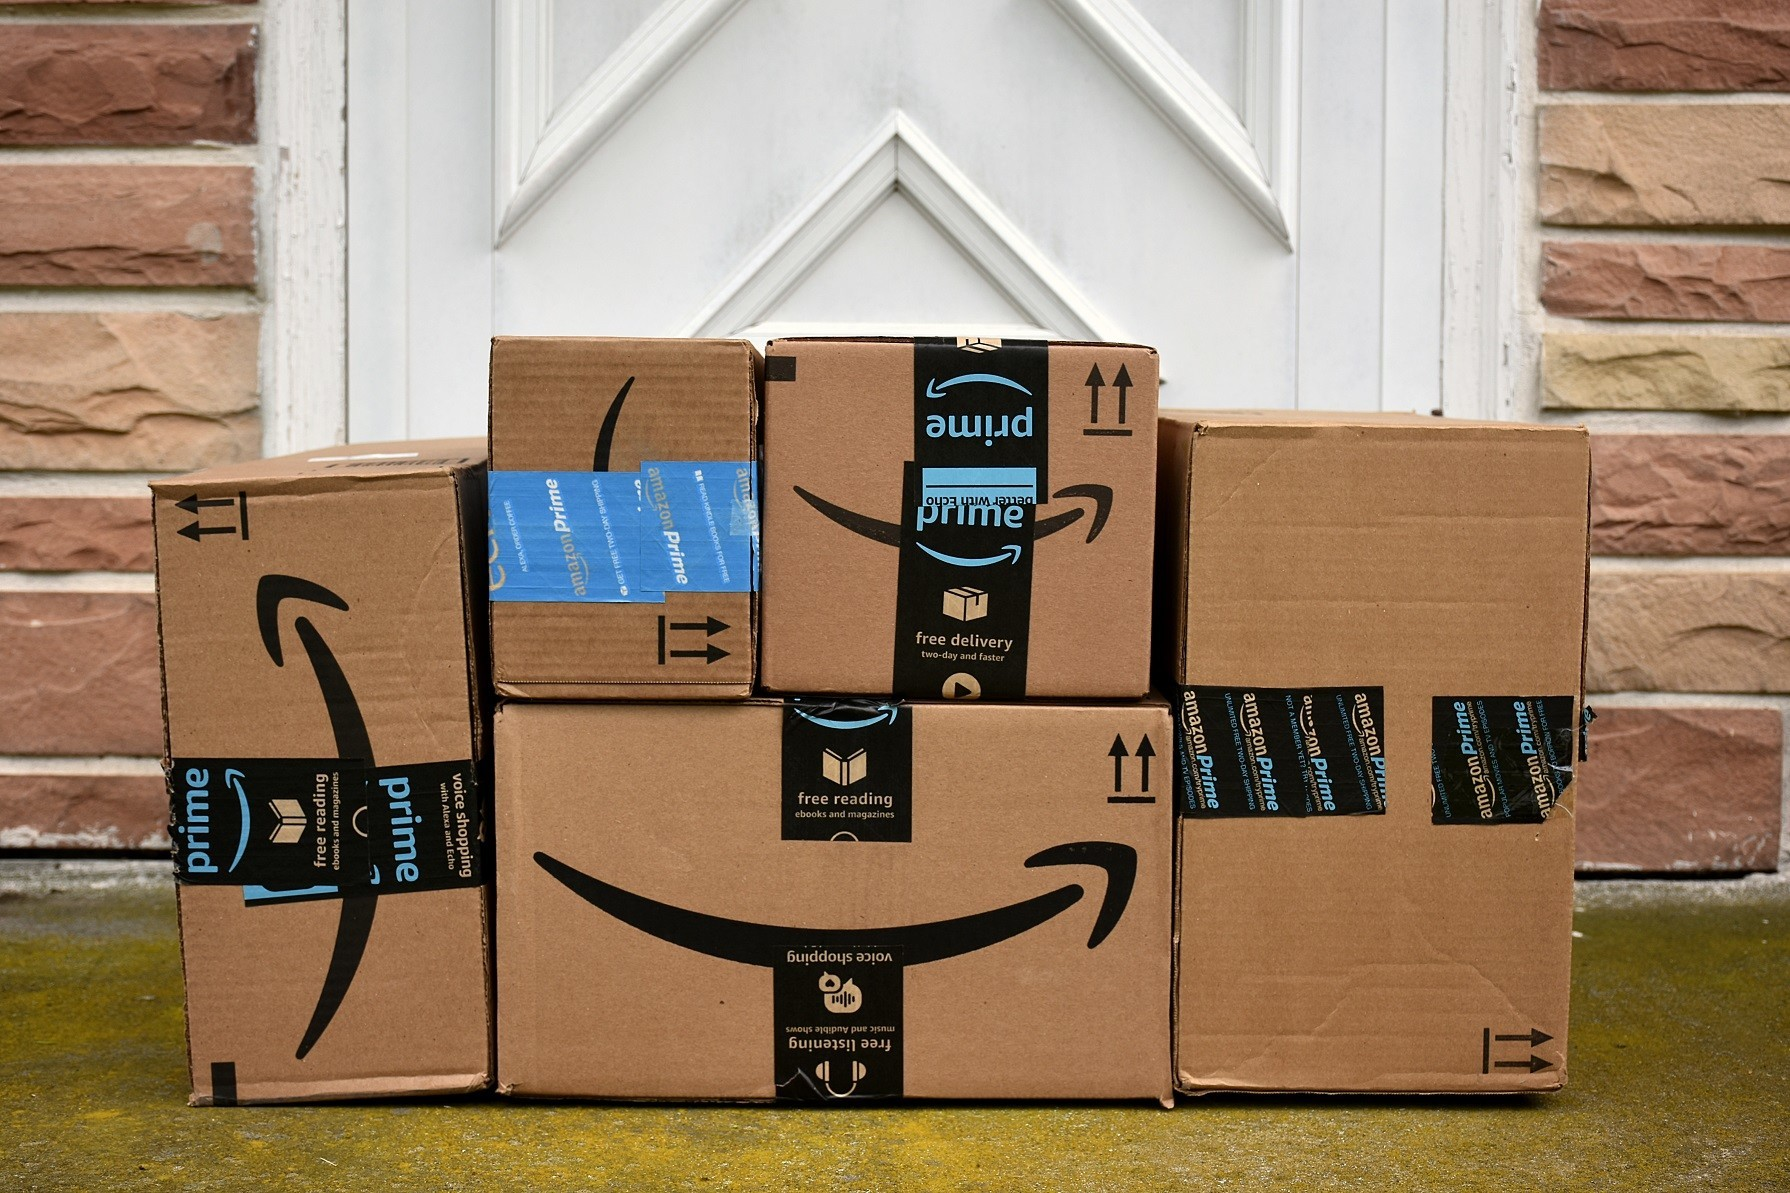 Amazon launches free Whole Foods deliveries for Prime